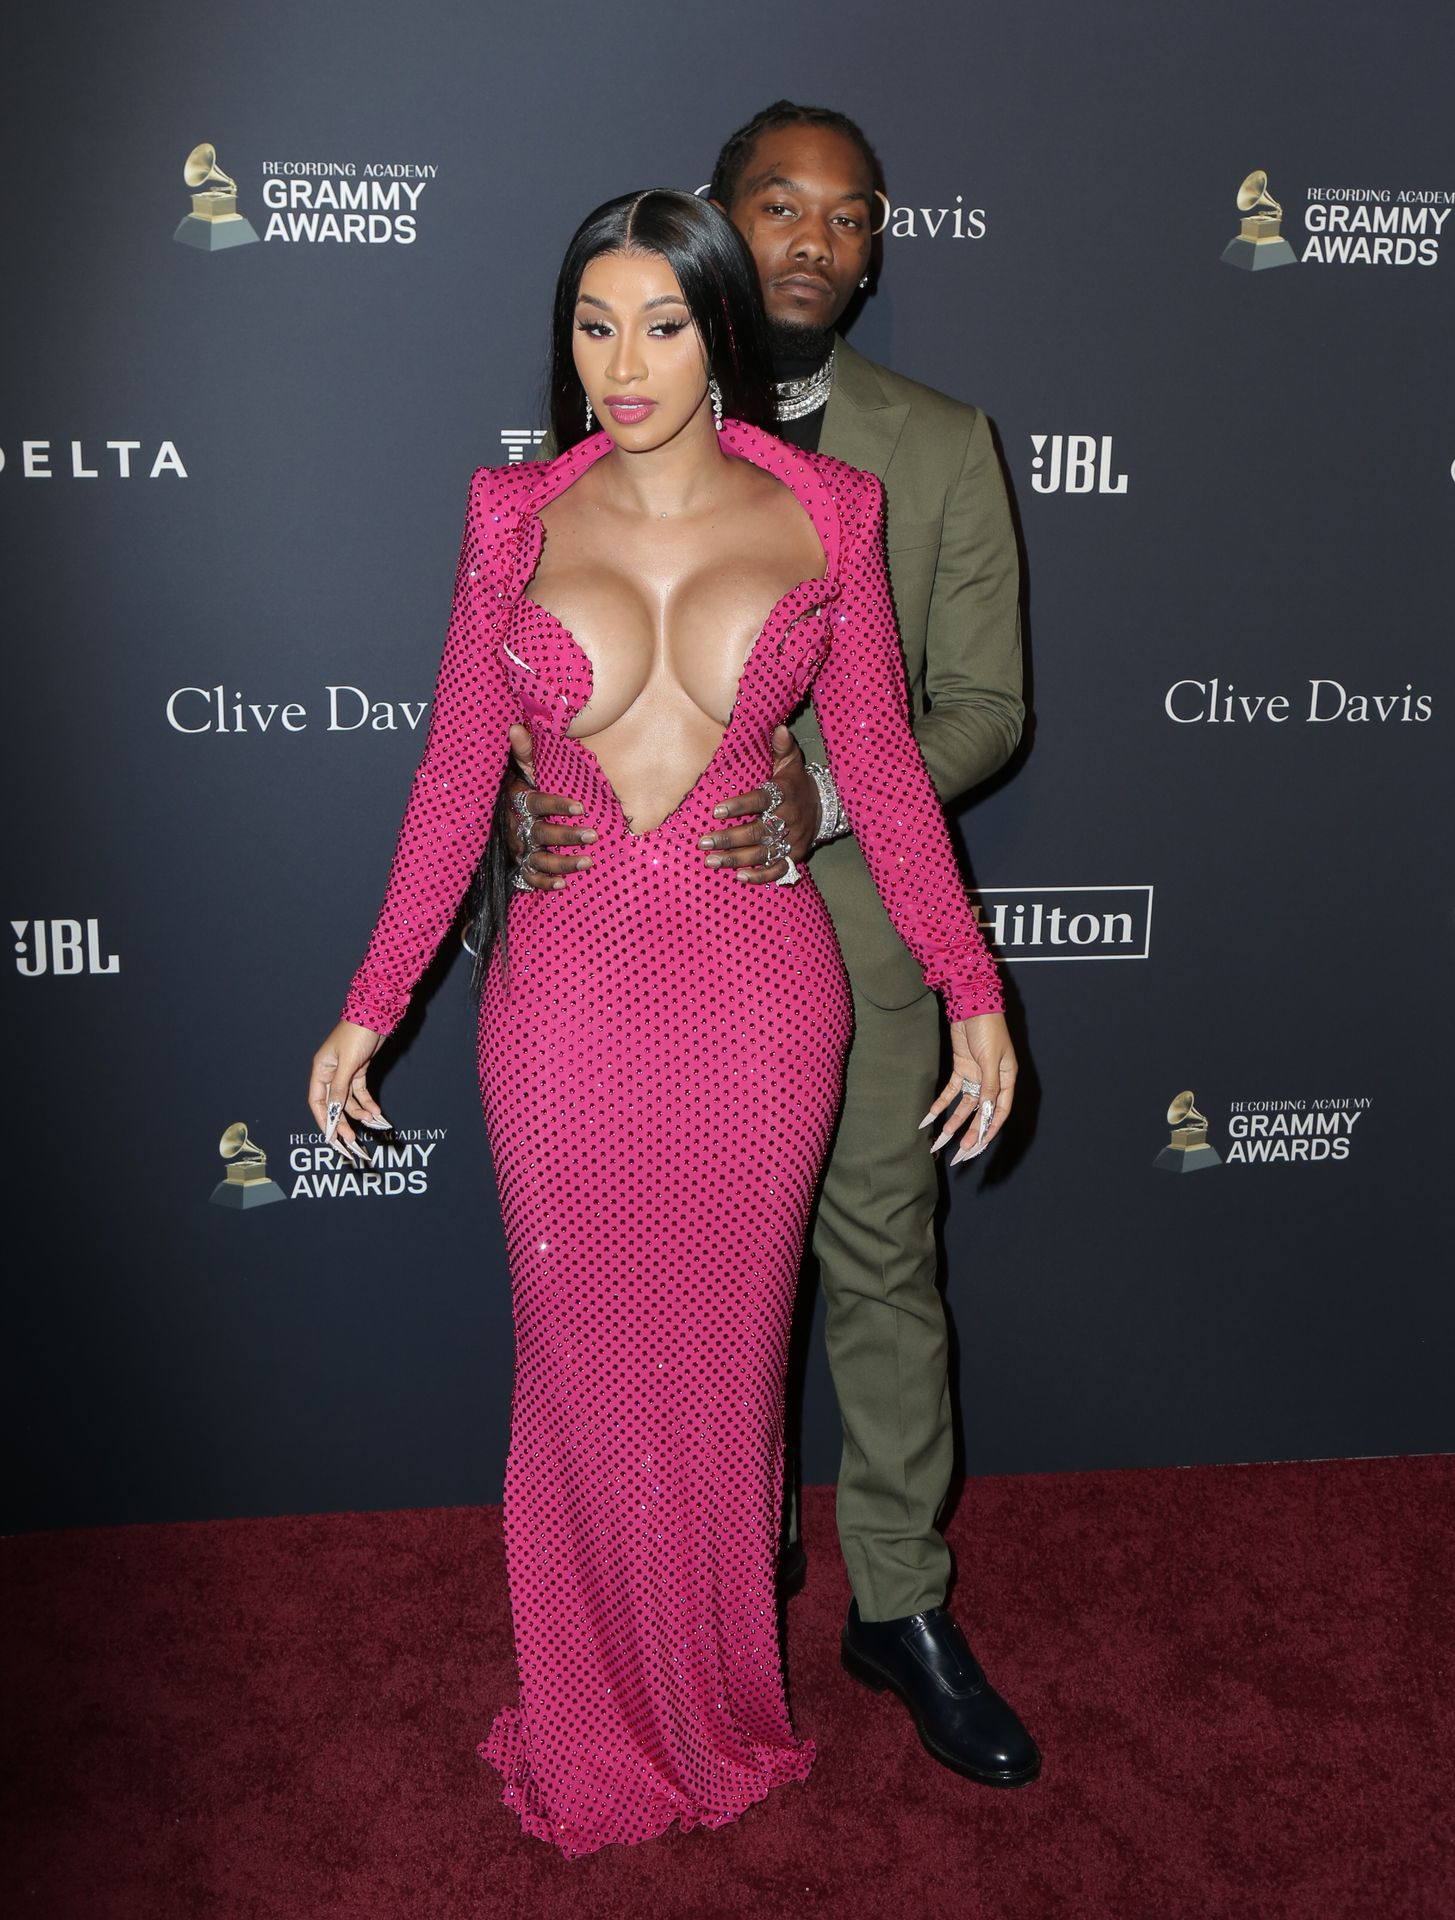 Offset Covers Cardi B's Boobs To Avoid Wardrobe Malfunction At Clive Davis Pre Grammy Party 0075